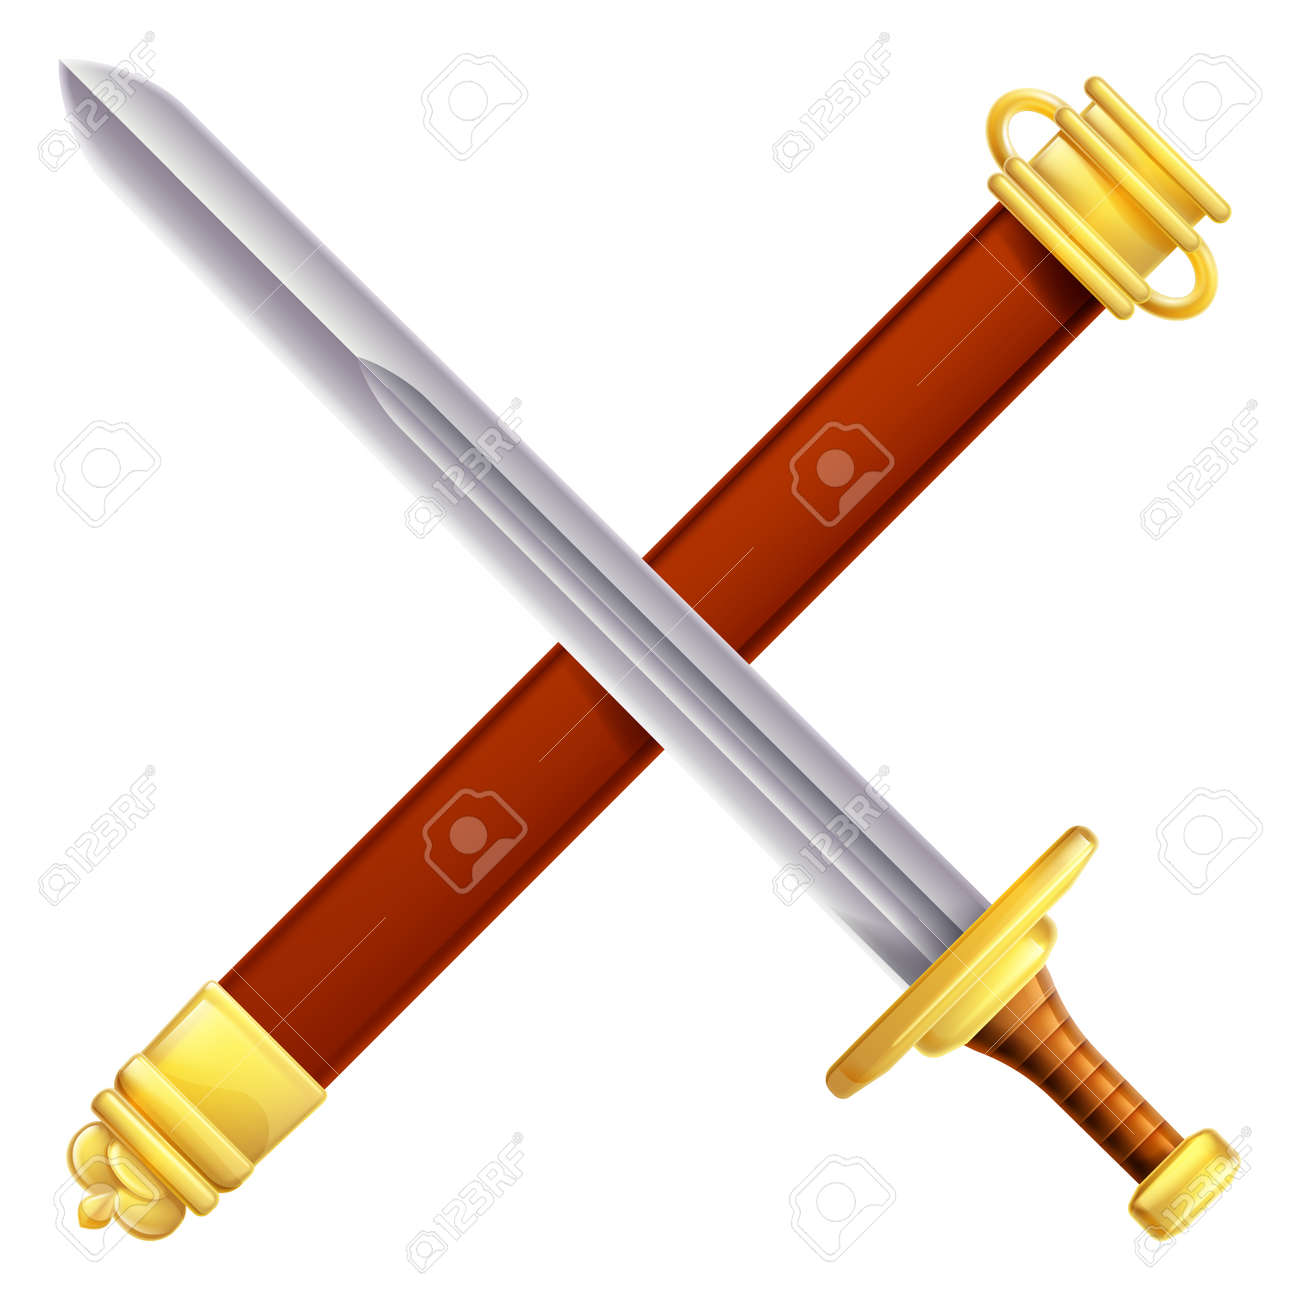 An illustration of a crossed sword and scabbard - 42463860